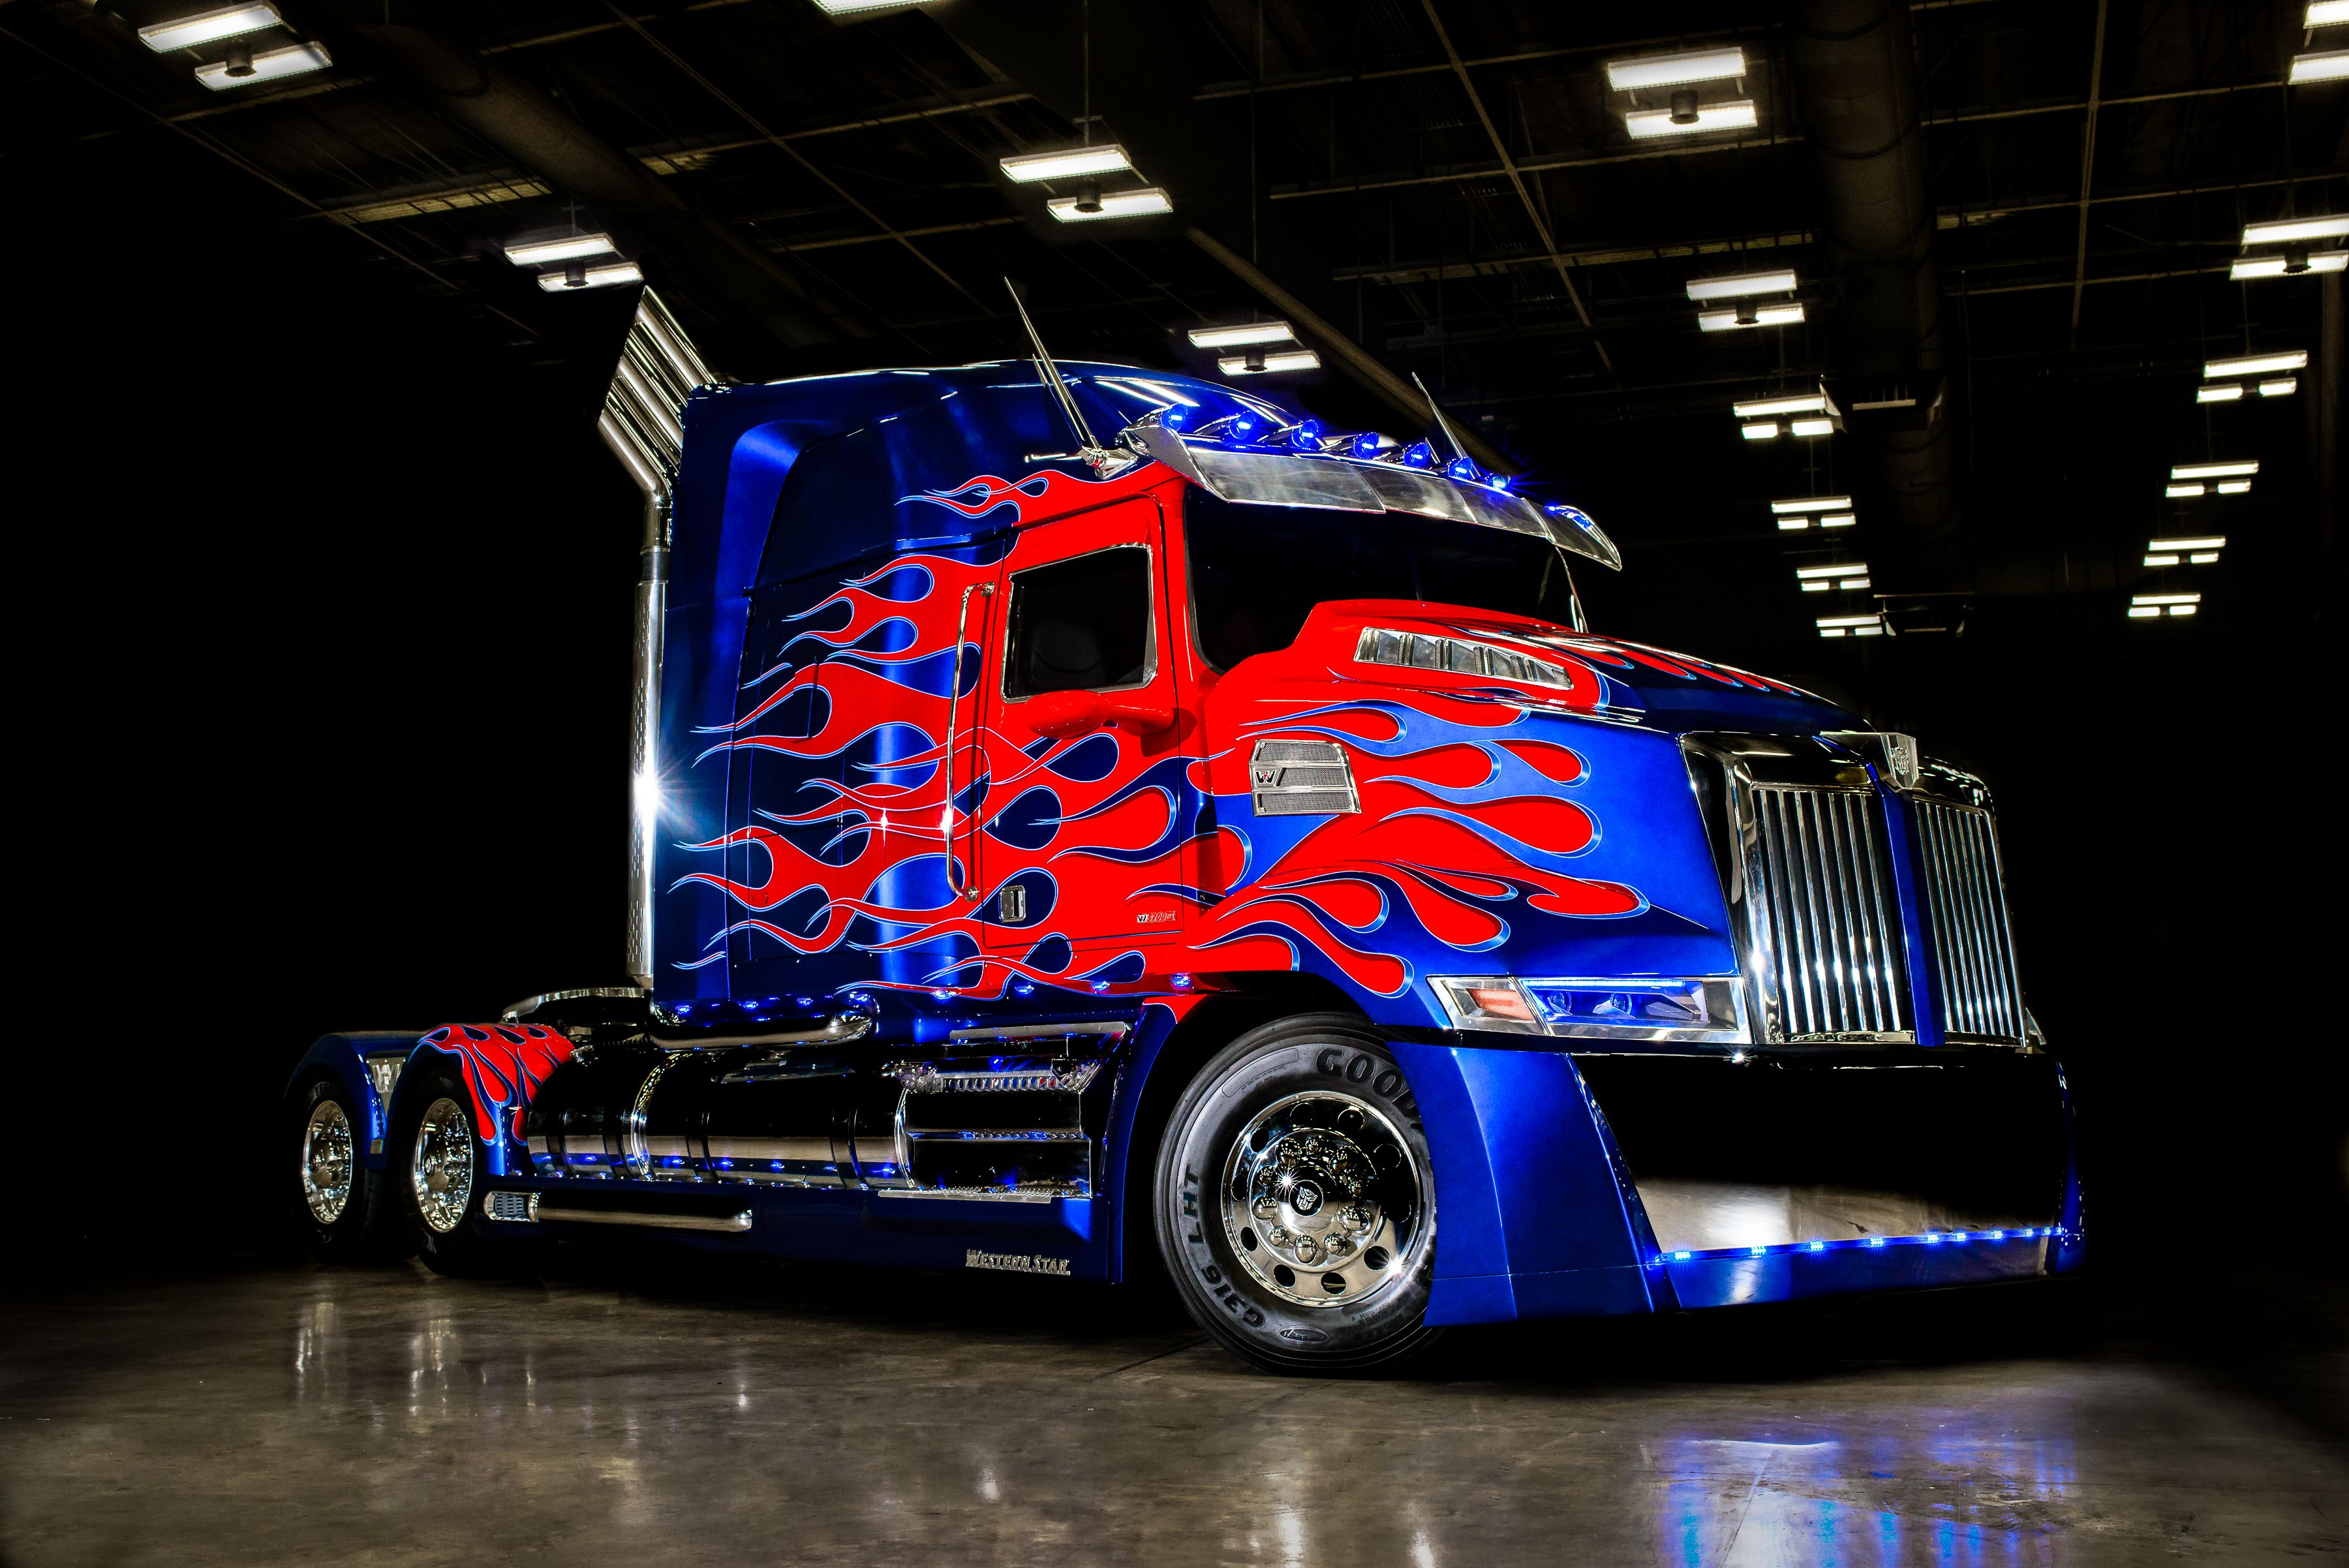 Austin Commercial Photographer Optimus Prime And Car2go With